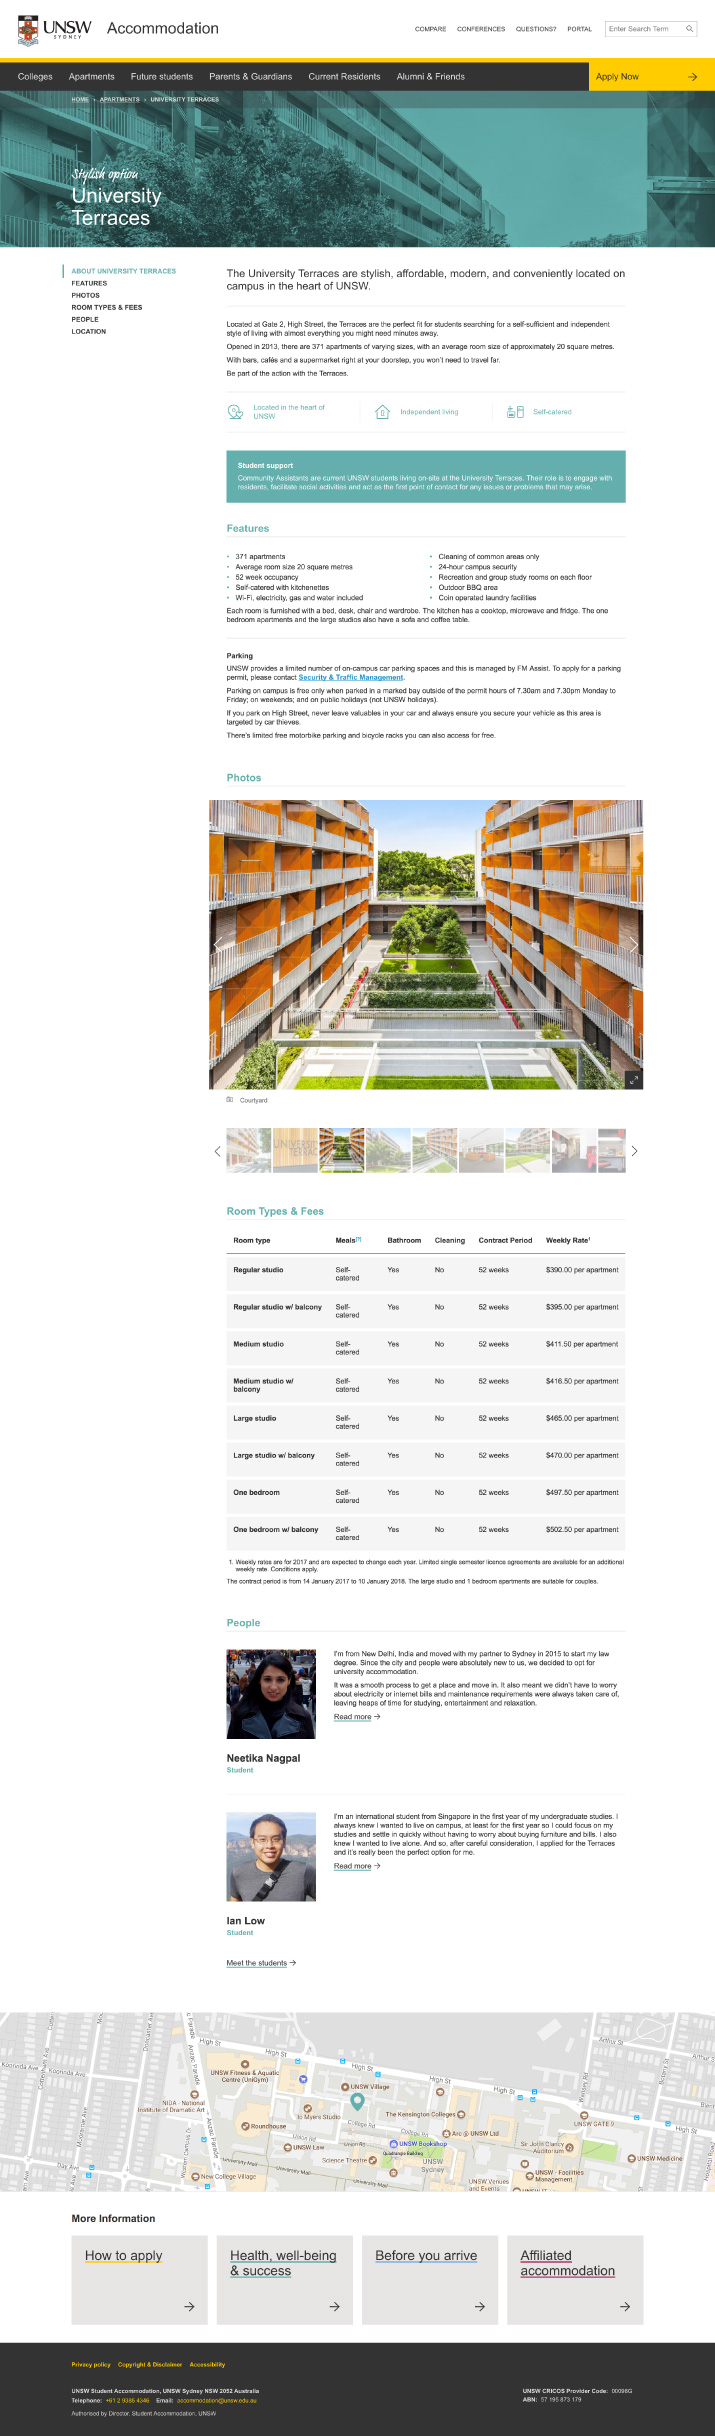 UNSW Accommodation - Apartment